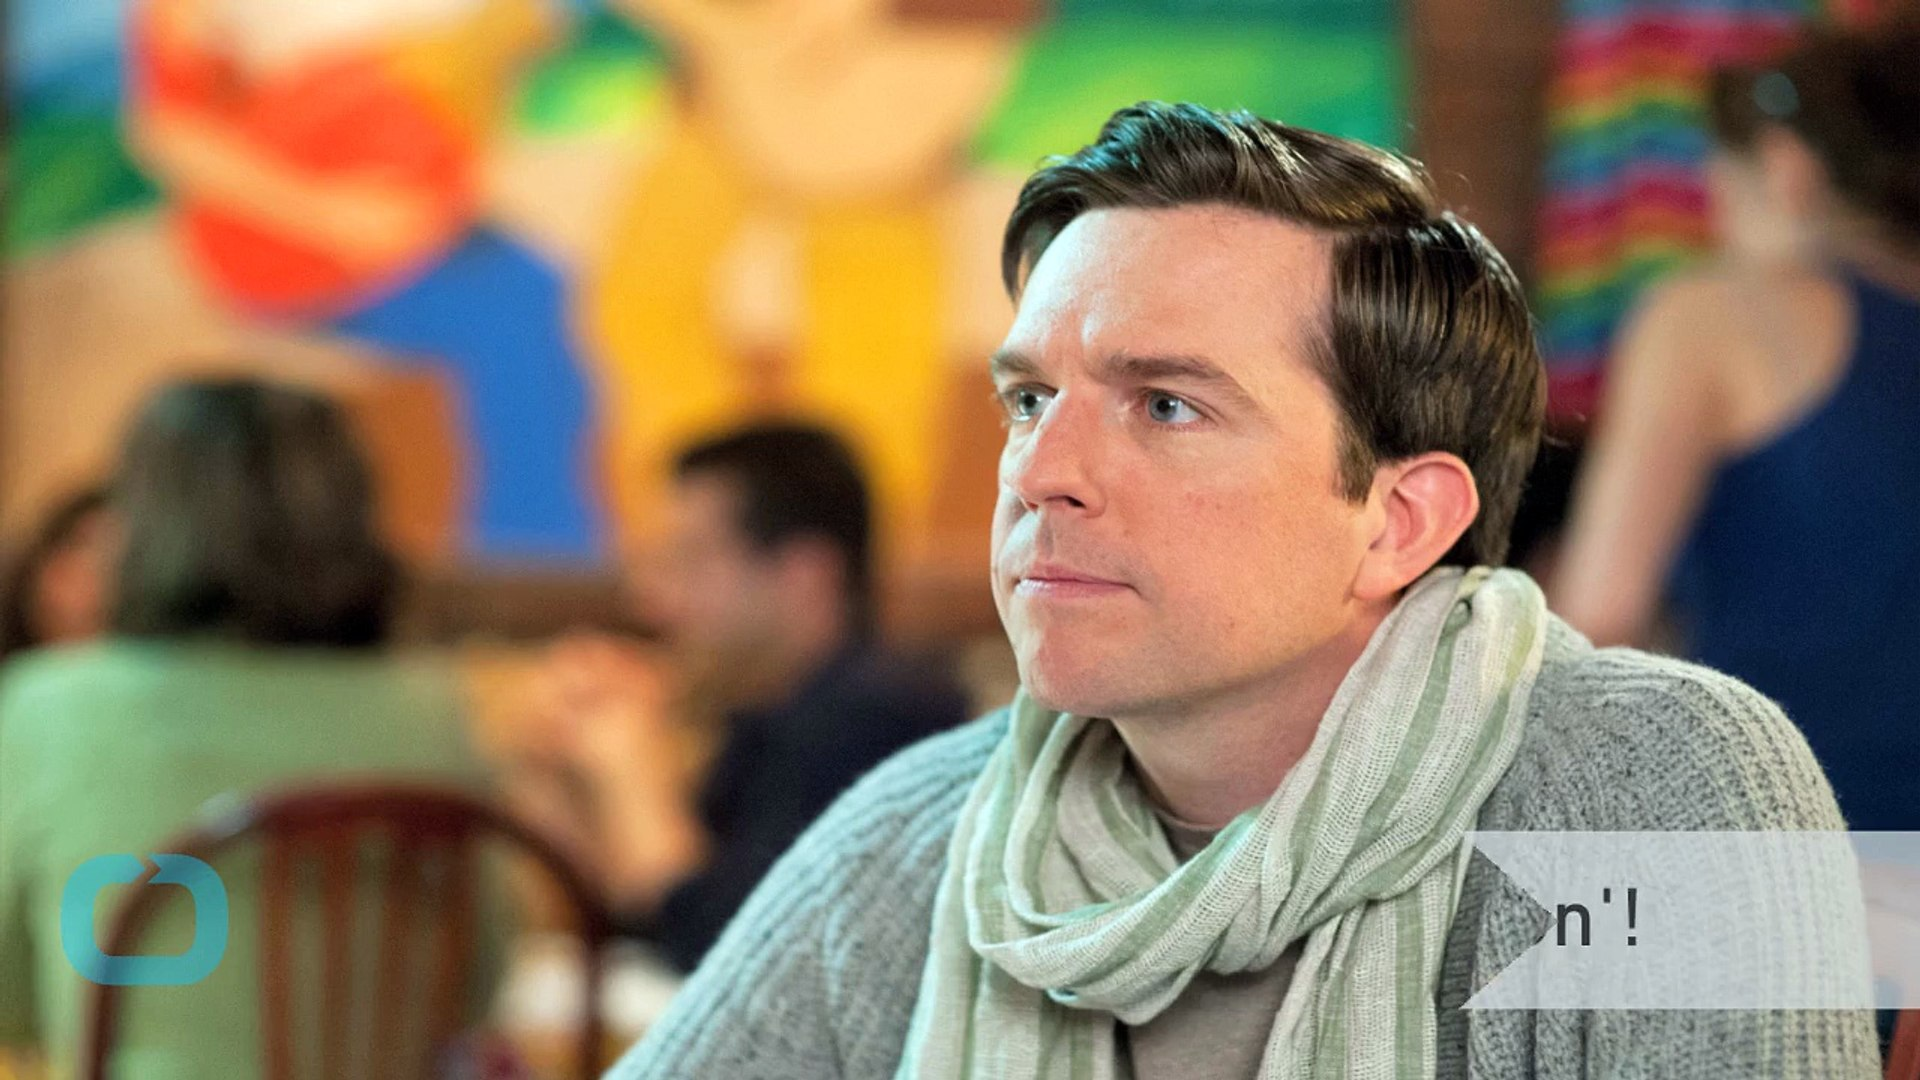 Ed Helms Brings Back 'Vacation'!